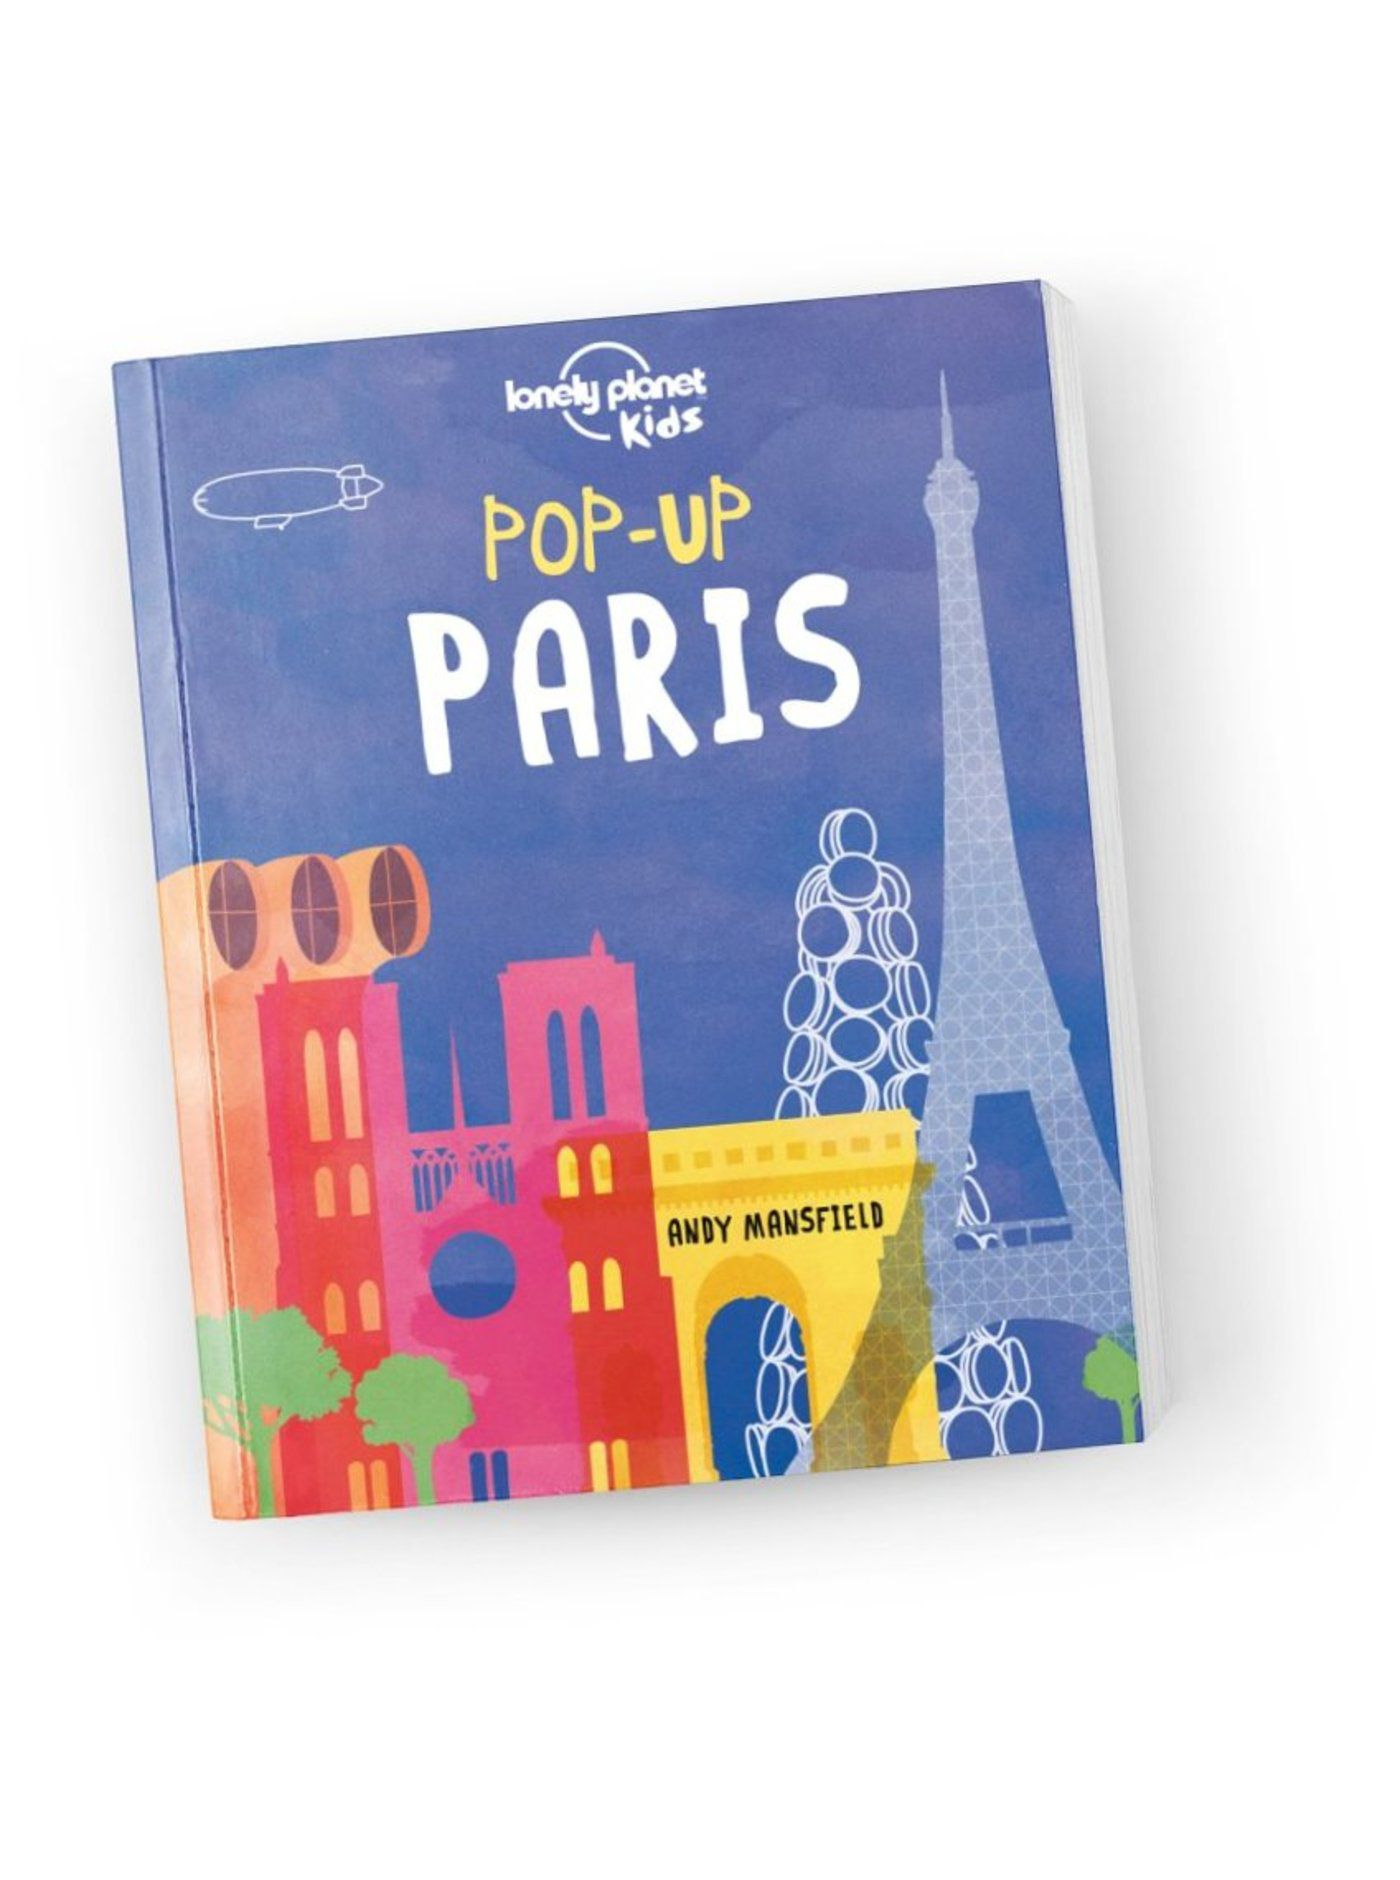 lonely planet 39 s pop up paris book lonely planet shop lonely planet us. Black Bedroom Furniture Sets. Home Design Ideas